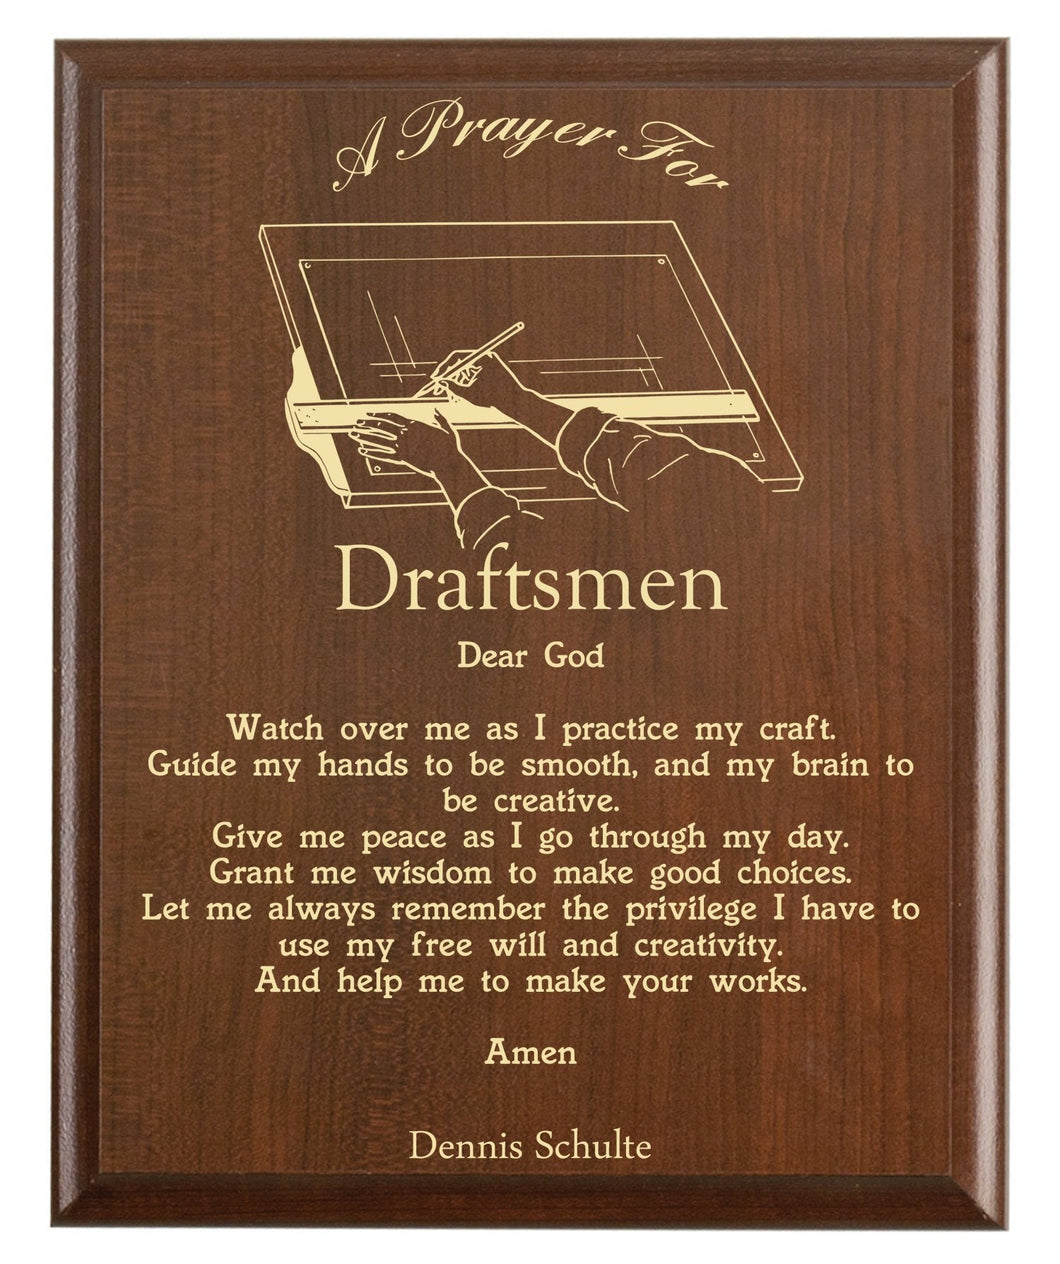 Christian prayer for a draftsman with industry logo and free personalization. Cherry finish with laser engraved text.